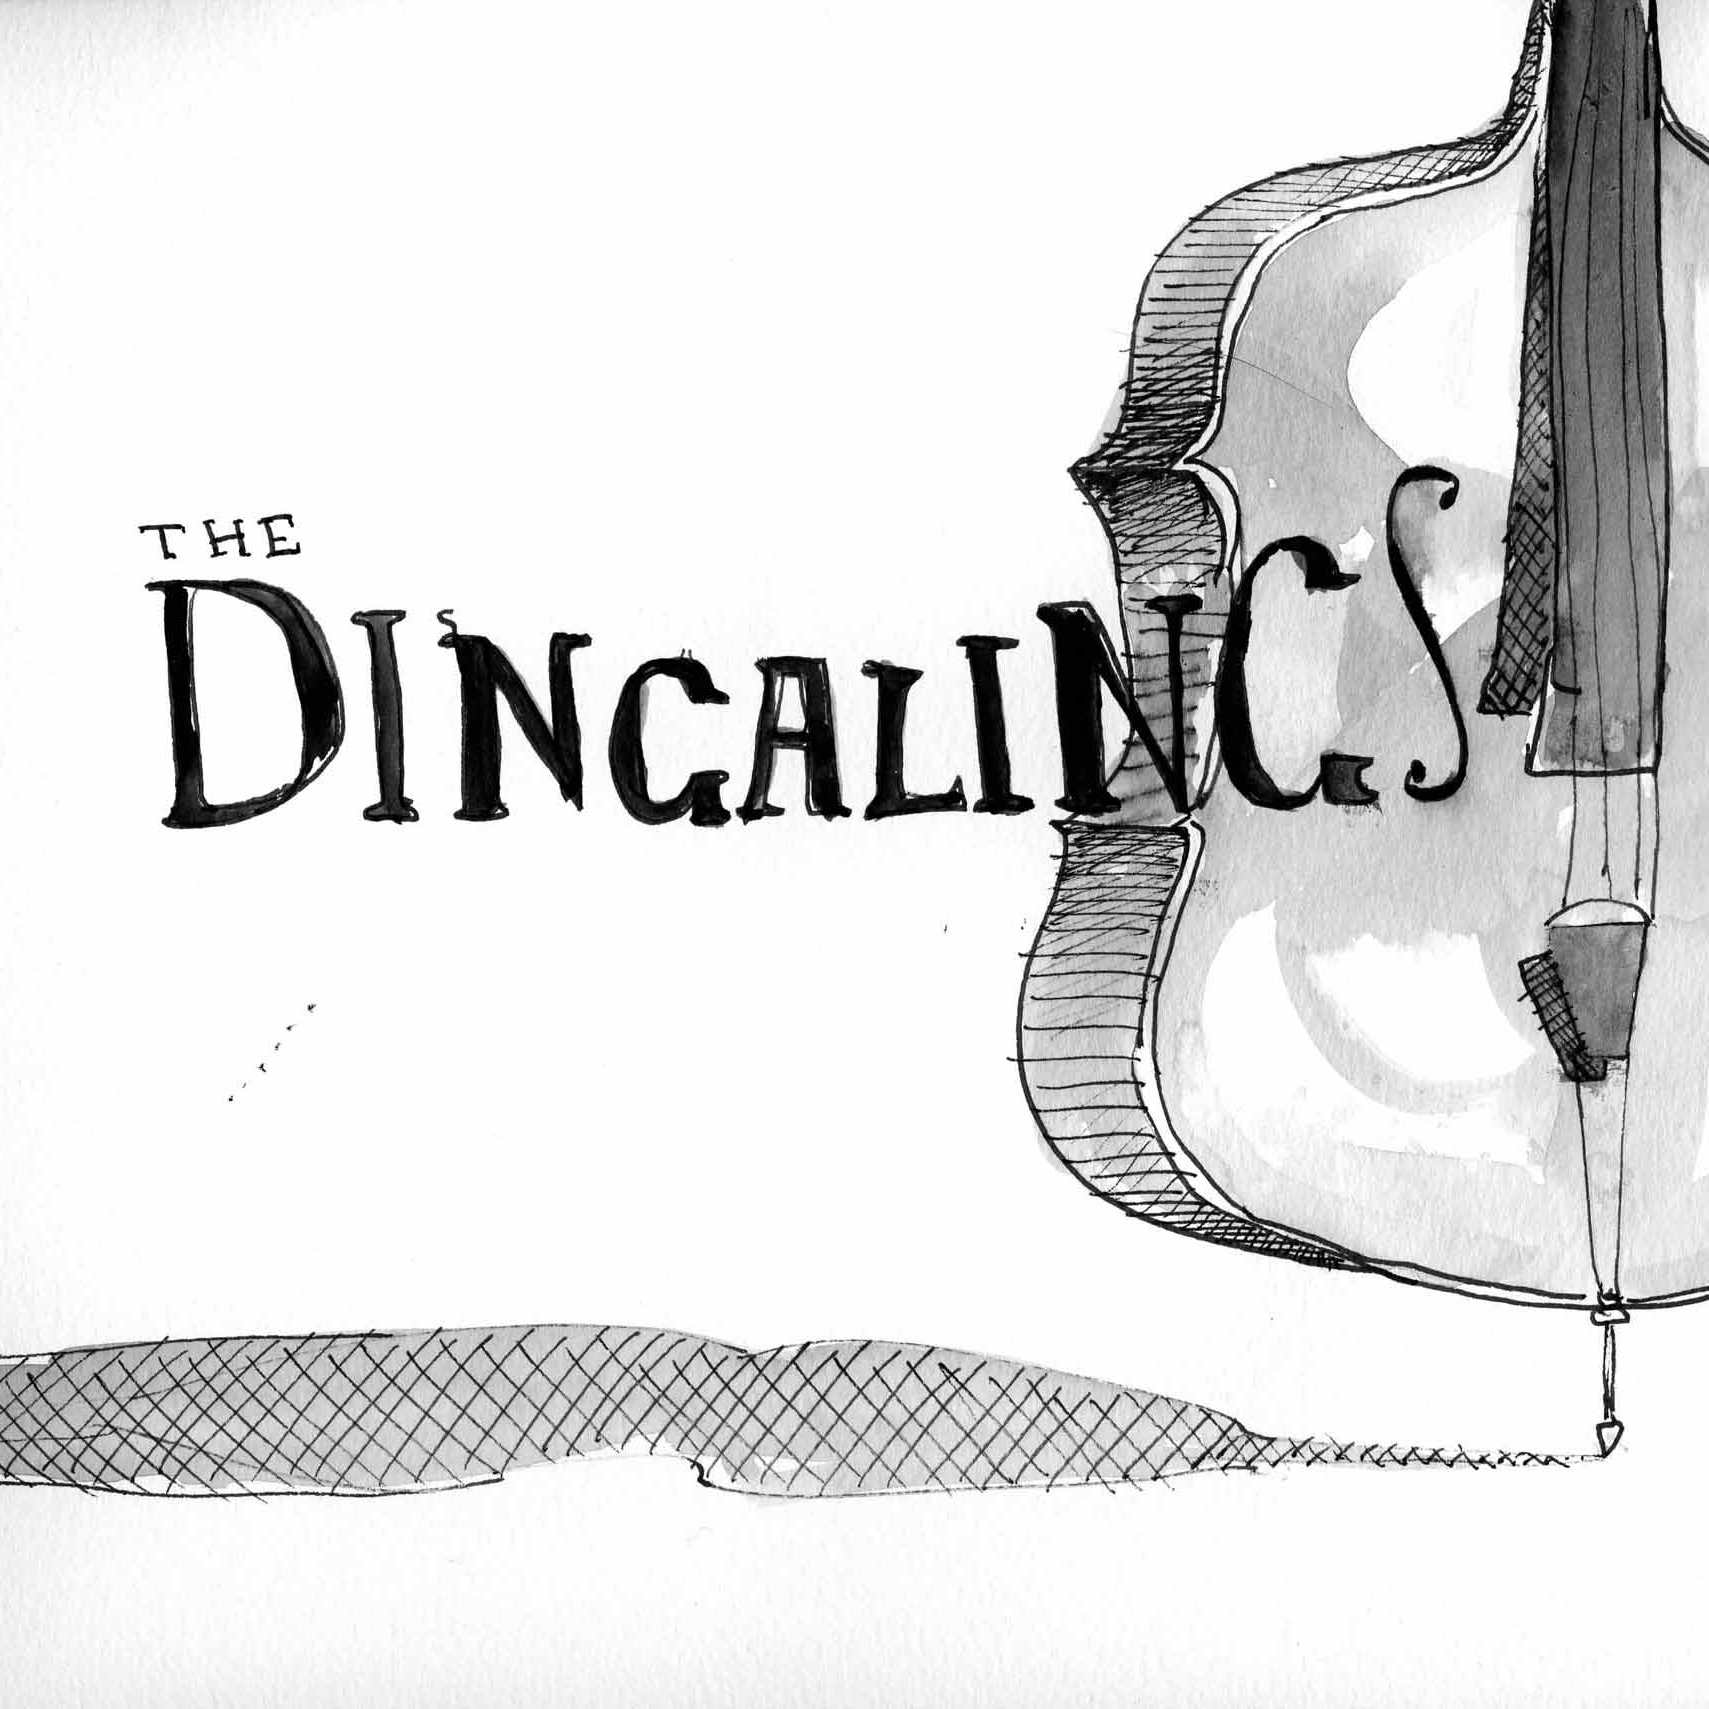 THE DINGALINGS songlist - The Dingalings play various music from the 1950's, and Rock and roll is a big part of our repertoire. At times or when requested, we love to play Jazz, Rhythm & Blues, Calypso, Country and other instrumental music such as surf rock.Artists: Chuck Berry, Bo Diddley, Fats Domino, Hank Williams, The Everly Brothers, Link Wray, Dick Dale, The Shadows, The Chantays, Roy Orbison, Big Joe Turner, ElvisSongs:'You Never Can Tell''Roll Over Beethoven''You Can't Catch Me''School Day''Maybellene''Rock and Roll Music''Too Much Monkey Business''Brown Eyed Handsome Man''Sweet Little Sixteen''No Money Down''Johnny B. Goode''Thirty Days''Memphis Tennesse' Chuck Berry/Elvis'Almost Grown''Back In the U.S.A.''Route 66''Jambalaya' Hank Williams'Who do you love'Blue Bayou'Rumble' Link Wray'Heartbreak Hotel''Comanche''Rebel Rouser''Ghost riders in the sky''Bombora' The Atlantics'Misirlou' Dick Dale'Apache' The Shadows'Sleep walk''Pipeline' The Chantays'Blue Berry Hill' Fats Domino'Blue Monday''one after 909' the Beatles'Shake, rattle and roll''Devoted'Instrumental Jazz can be played over dinnertime or when requested.